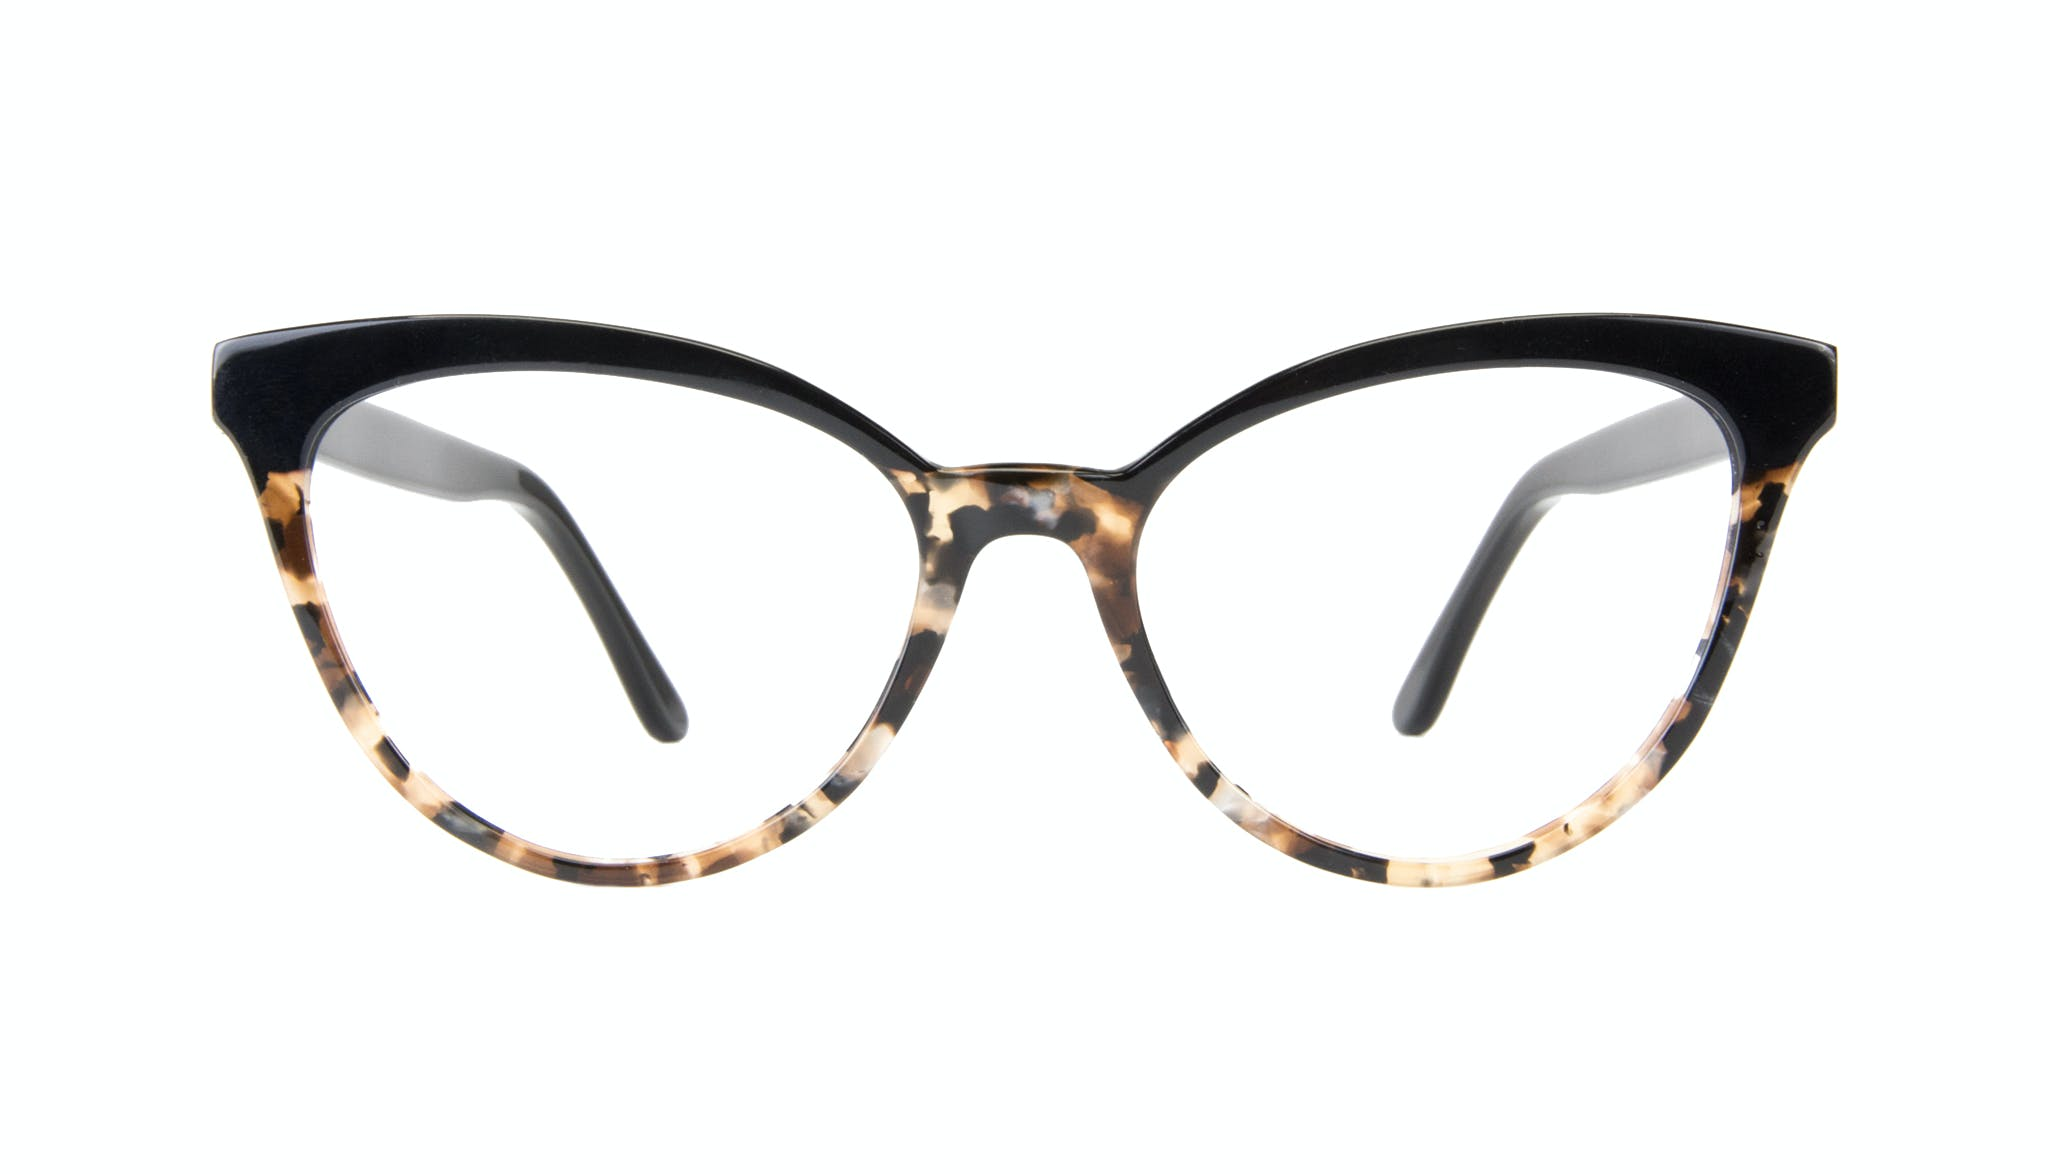 Affordable Fashion Glasses Cat Eye Daring Cateye Eyeglasses Women Reverie Dark Tortoise